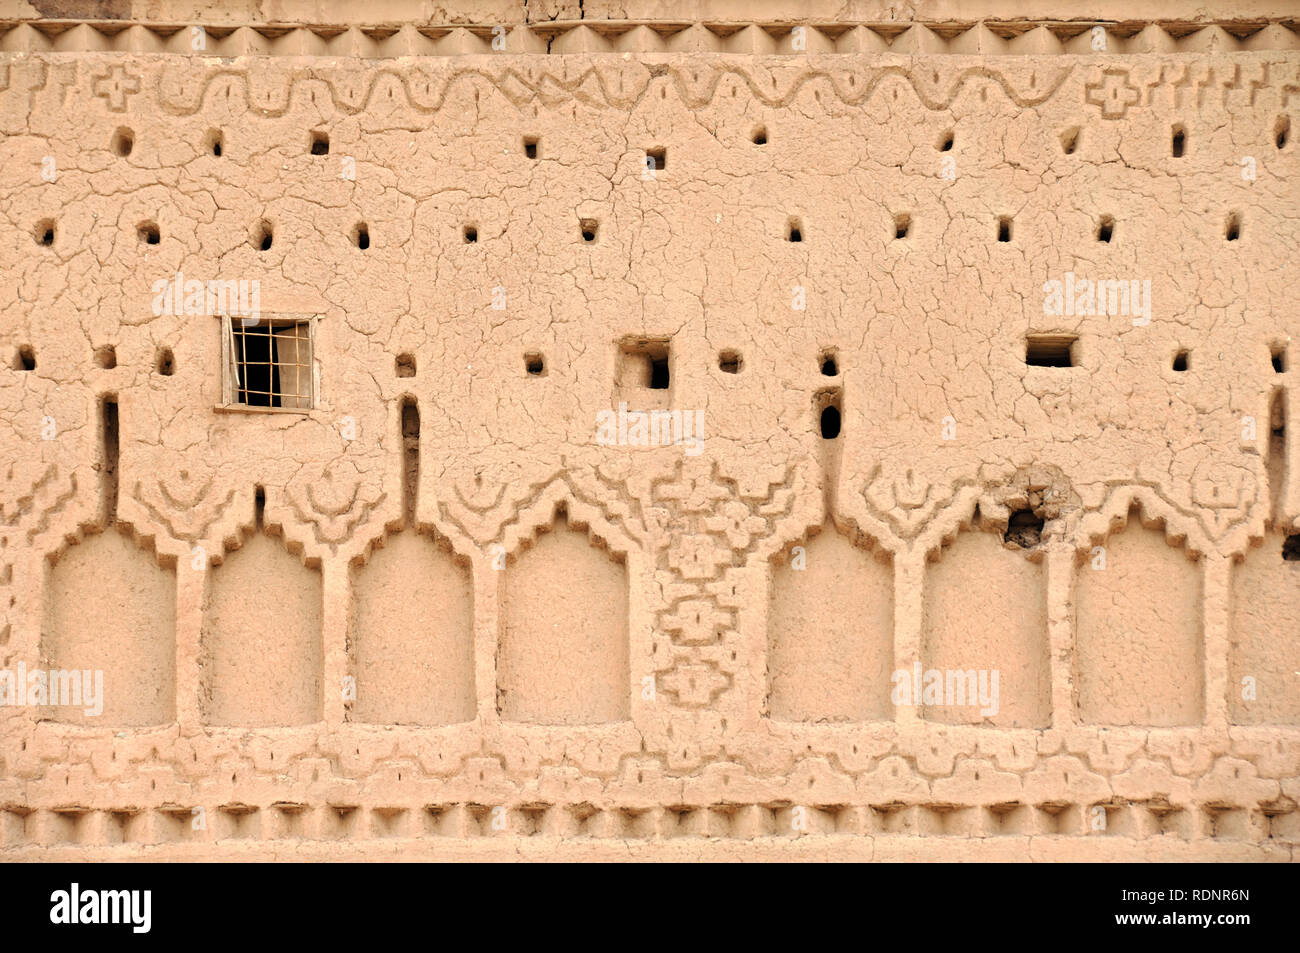 Adobe Mud Wall Details and Earth Construction Pattern Casbah Ouarzazate Morocco - Stock Image